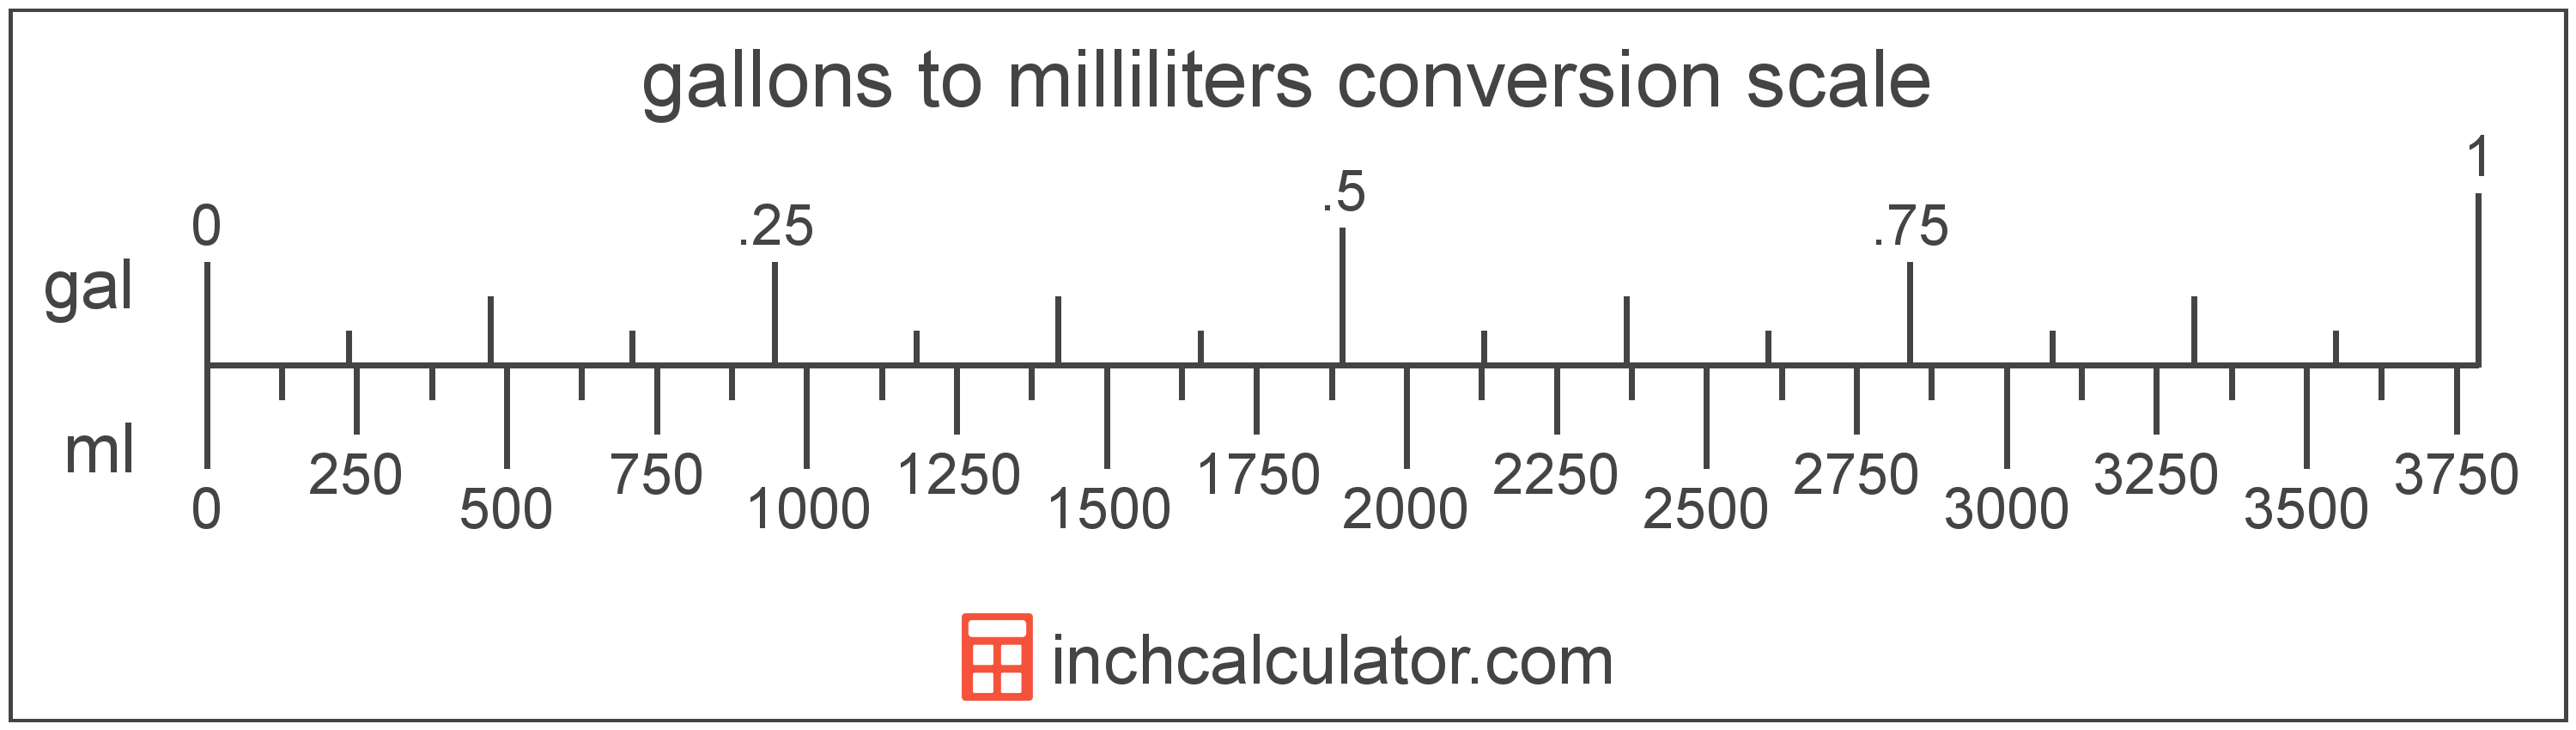 conversion scale showing gallons and equivalent milliliters volume values